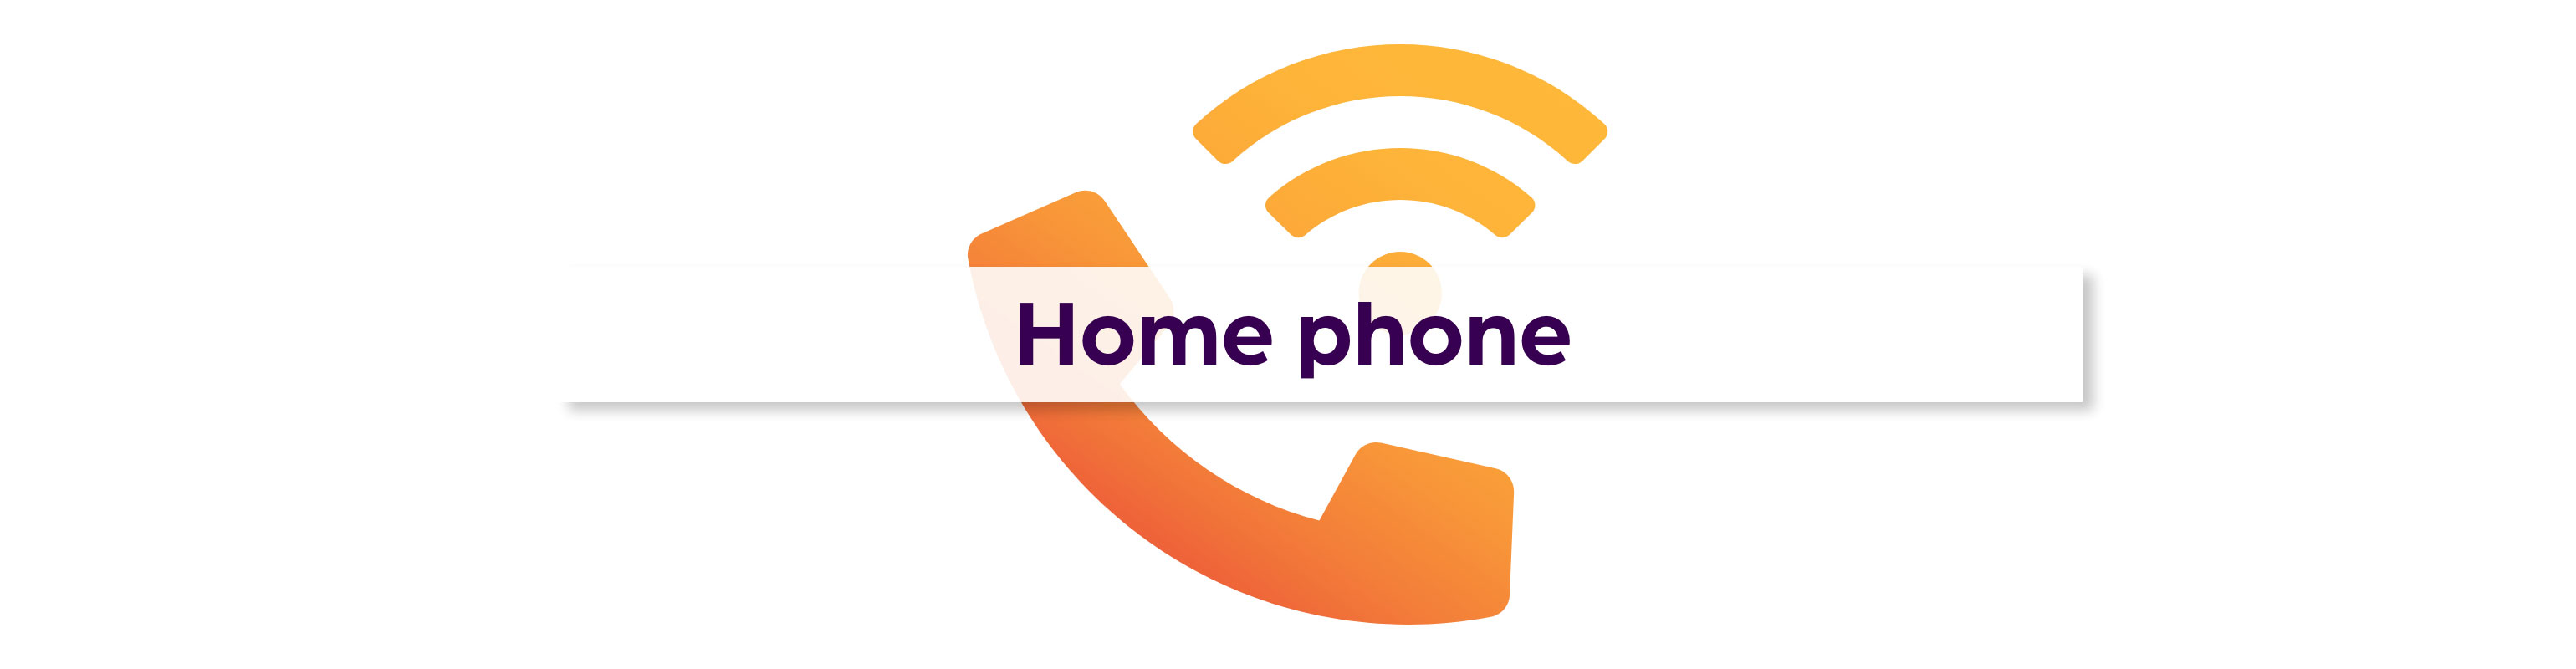 home_phone_community_fibre